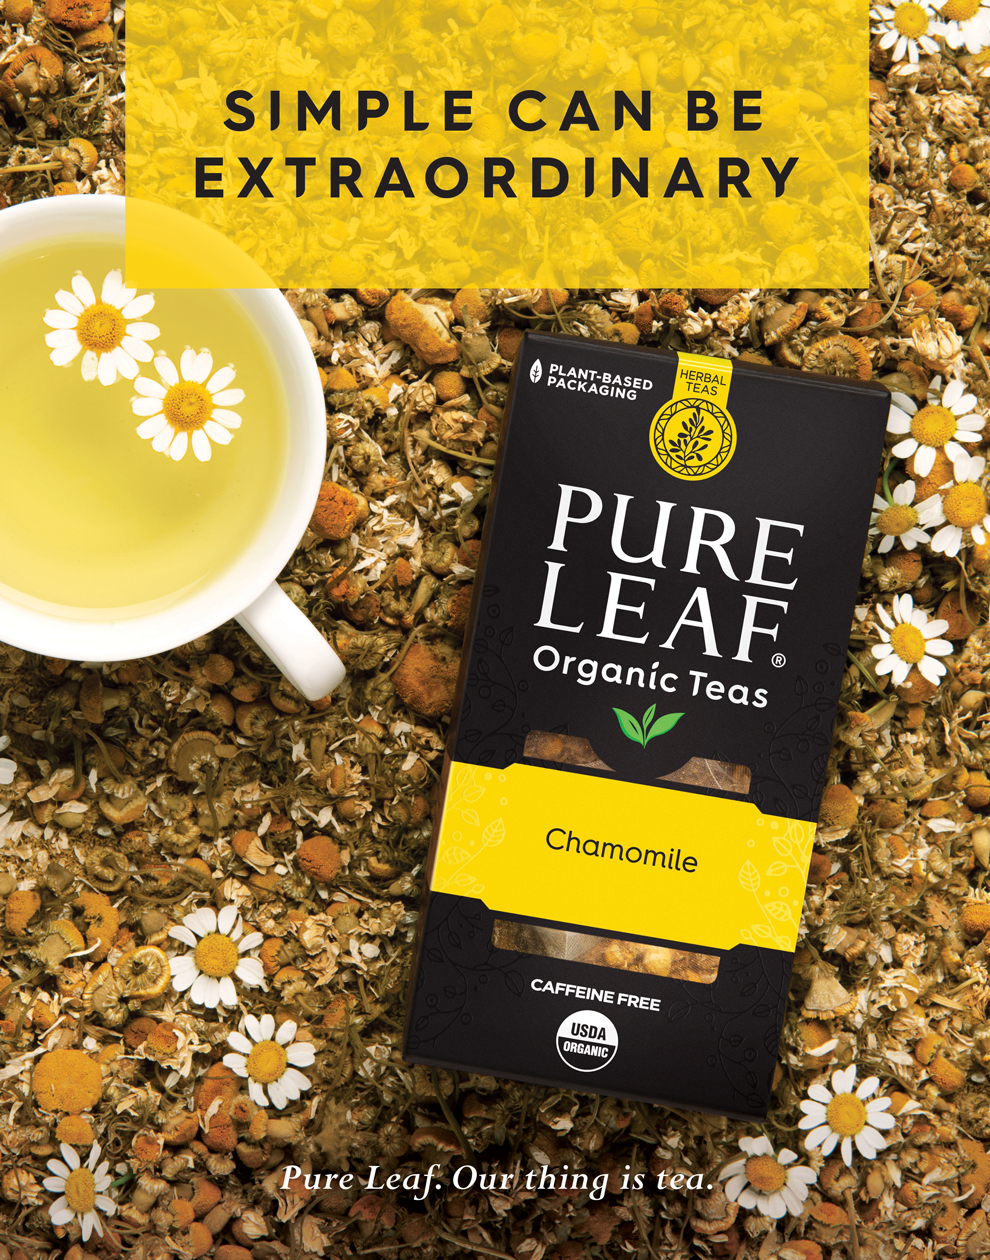 Ad campaign for Pure Leaf Tea